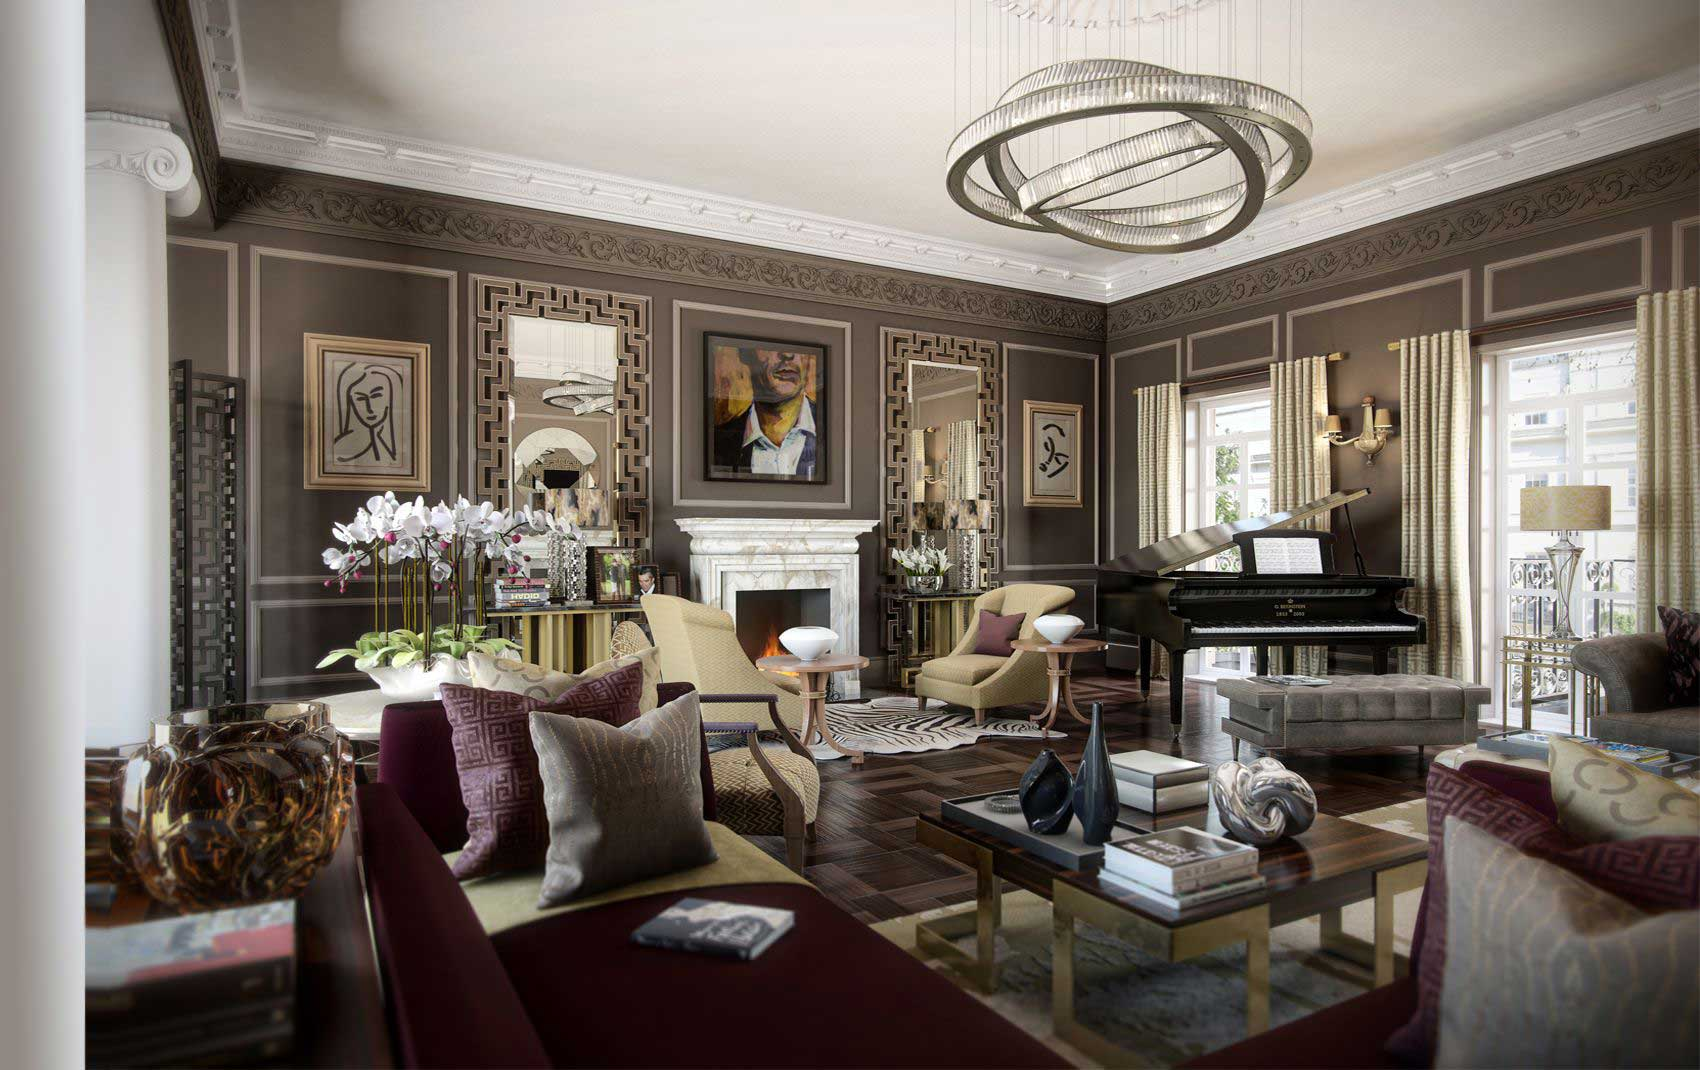 Luxury Interior Design Firm | High End Interior Design | Rene Dekker Design